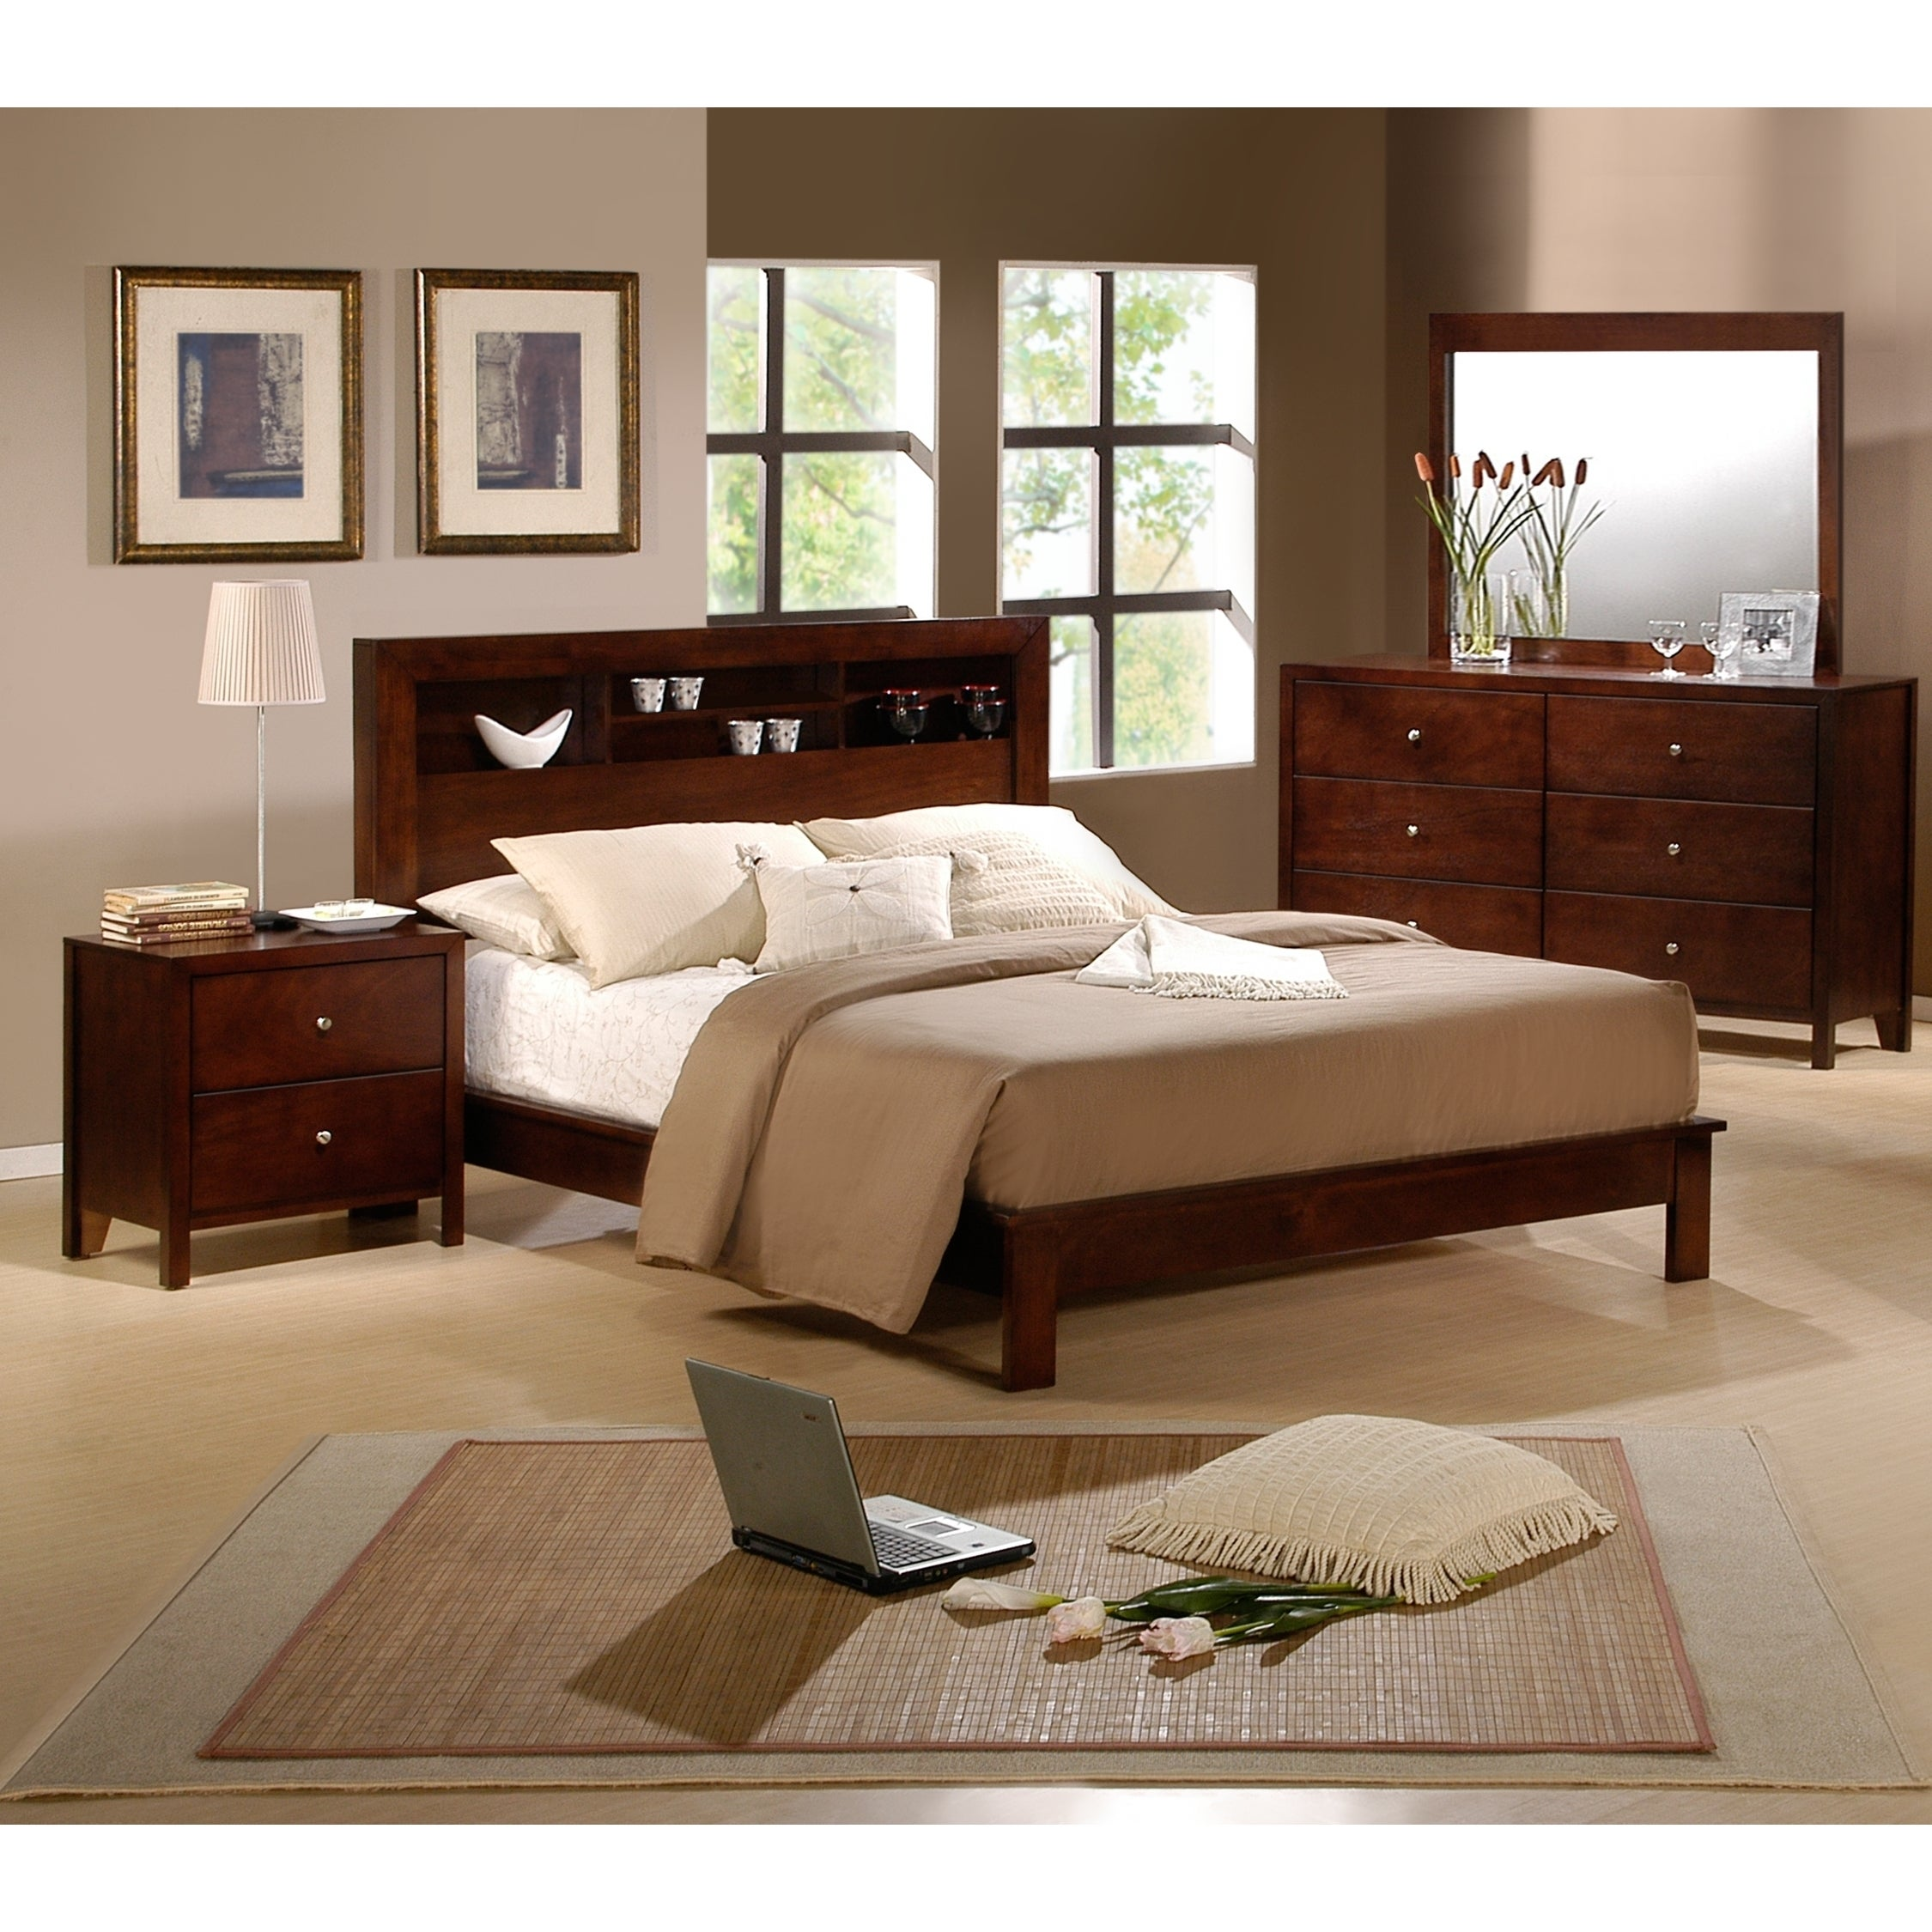 1085 Best Images About Bedroom Furniture On Pinterest: Picket House Sonata 4-Piece Queen-Size Bedroom Set